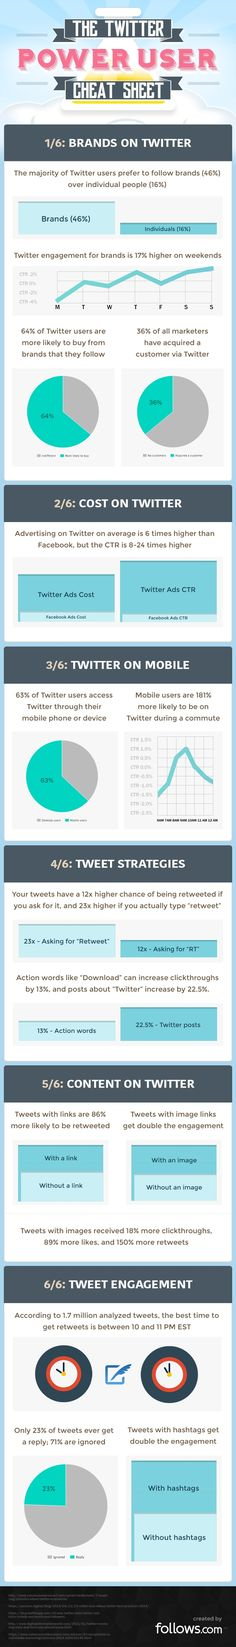 The Twitter Power User Cheat Sheet [INFOGRAPHIC] #six40marketing | For more digital marketing & social media tips follow @six40marketing | twitter.com/six40marketing | six40marketing.com